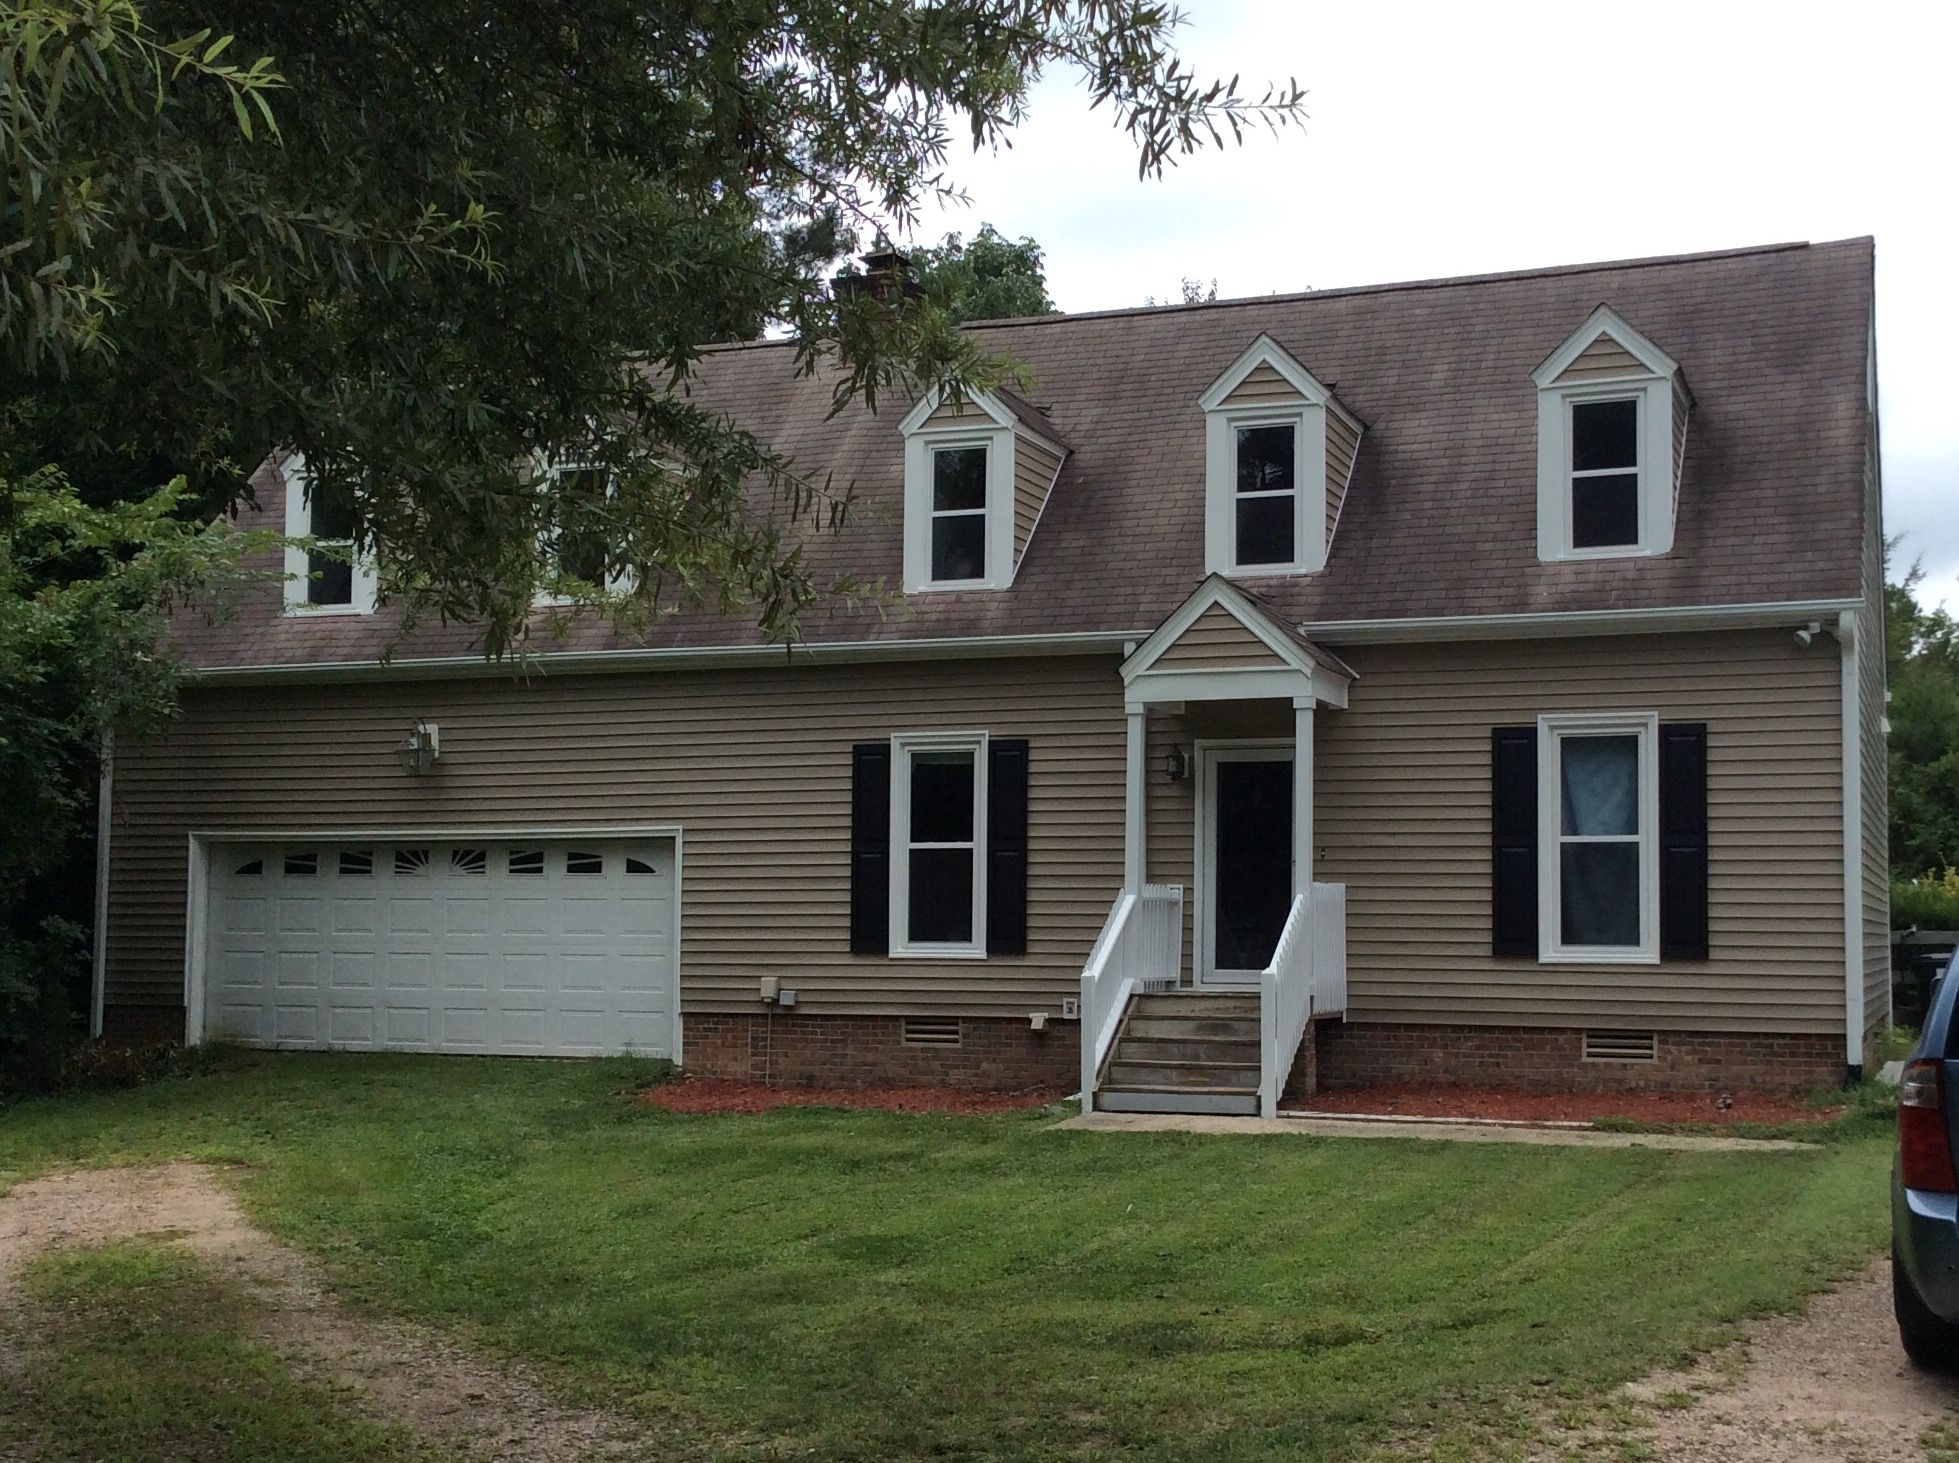 New Alside Conquest Clapboard Vinyl Siding In Tuscan Clay And Revere Berkshire Elite Windows